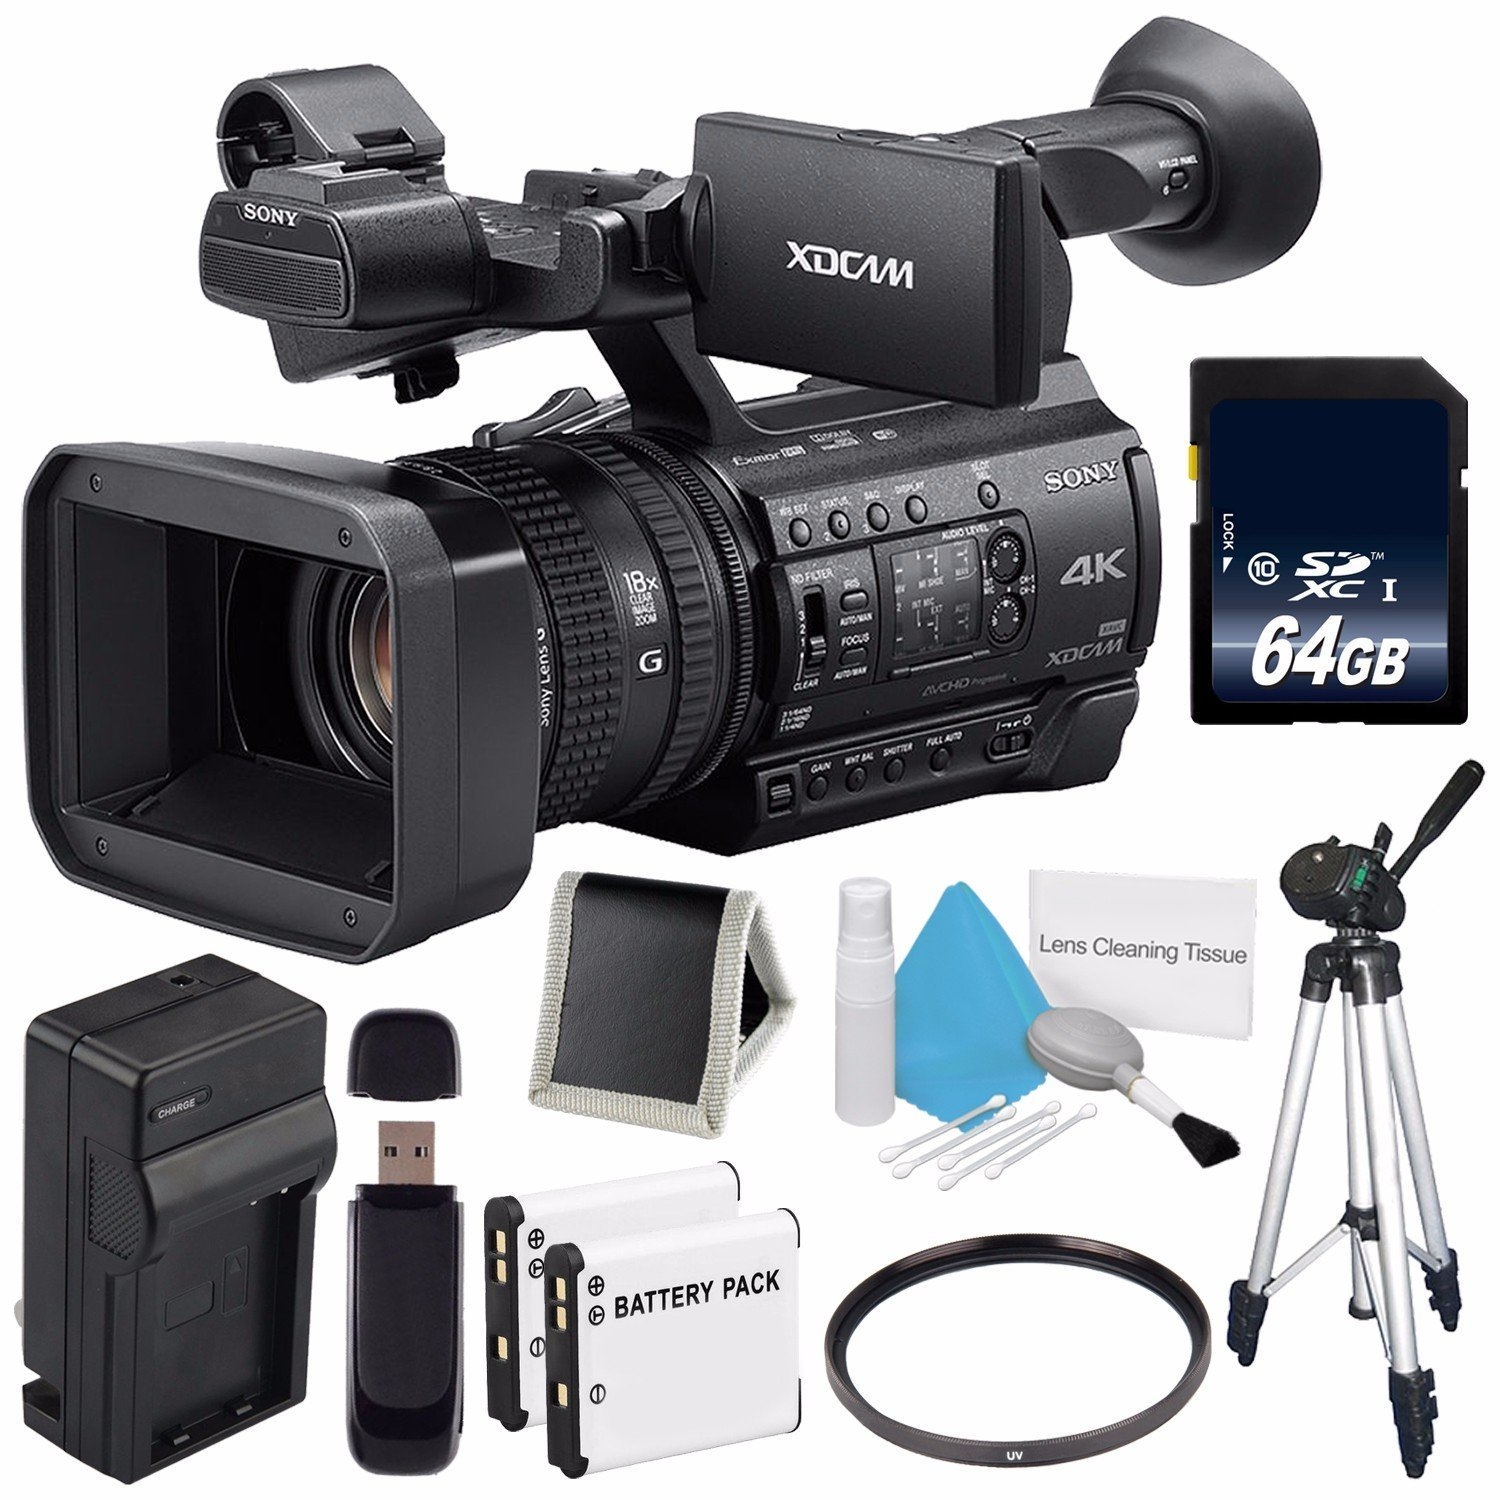 Sony PXW-Z150 4K XDCAM Camcorder (International Model) No Warranty + 64GB SDXC Class 10 Memory Card + NP-F970 Rechargeable Lithium Ion Battery + Charger Kit for Sony NP-F970 Bundle